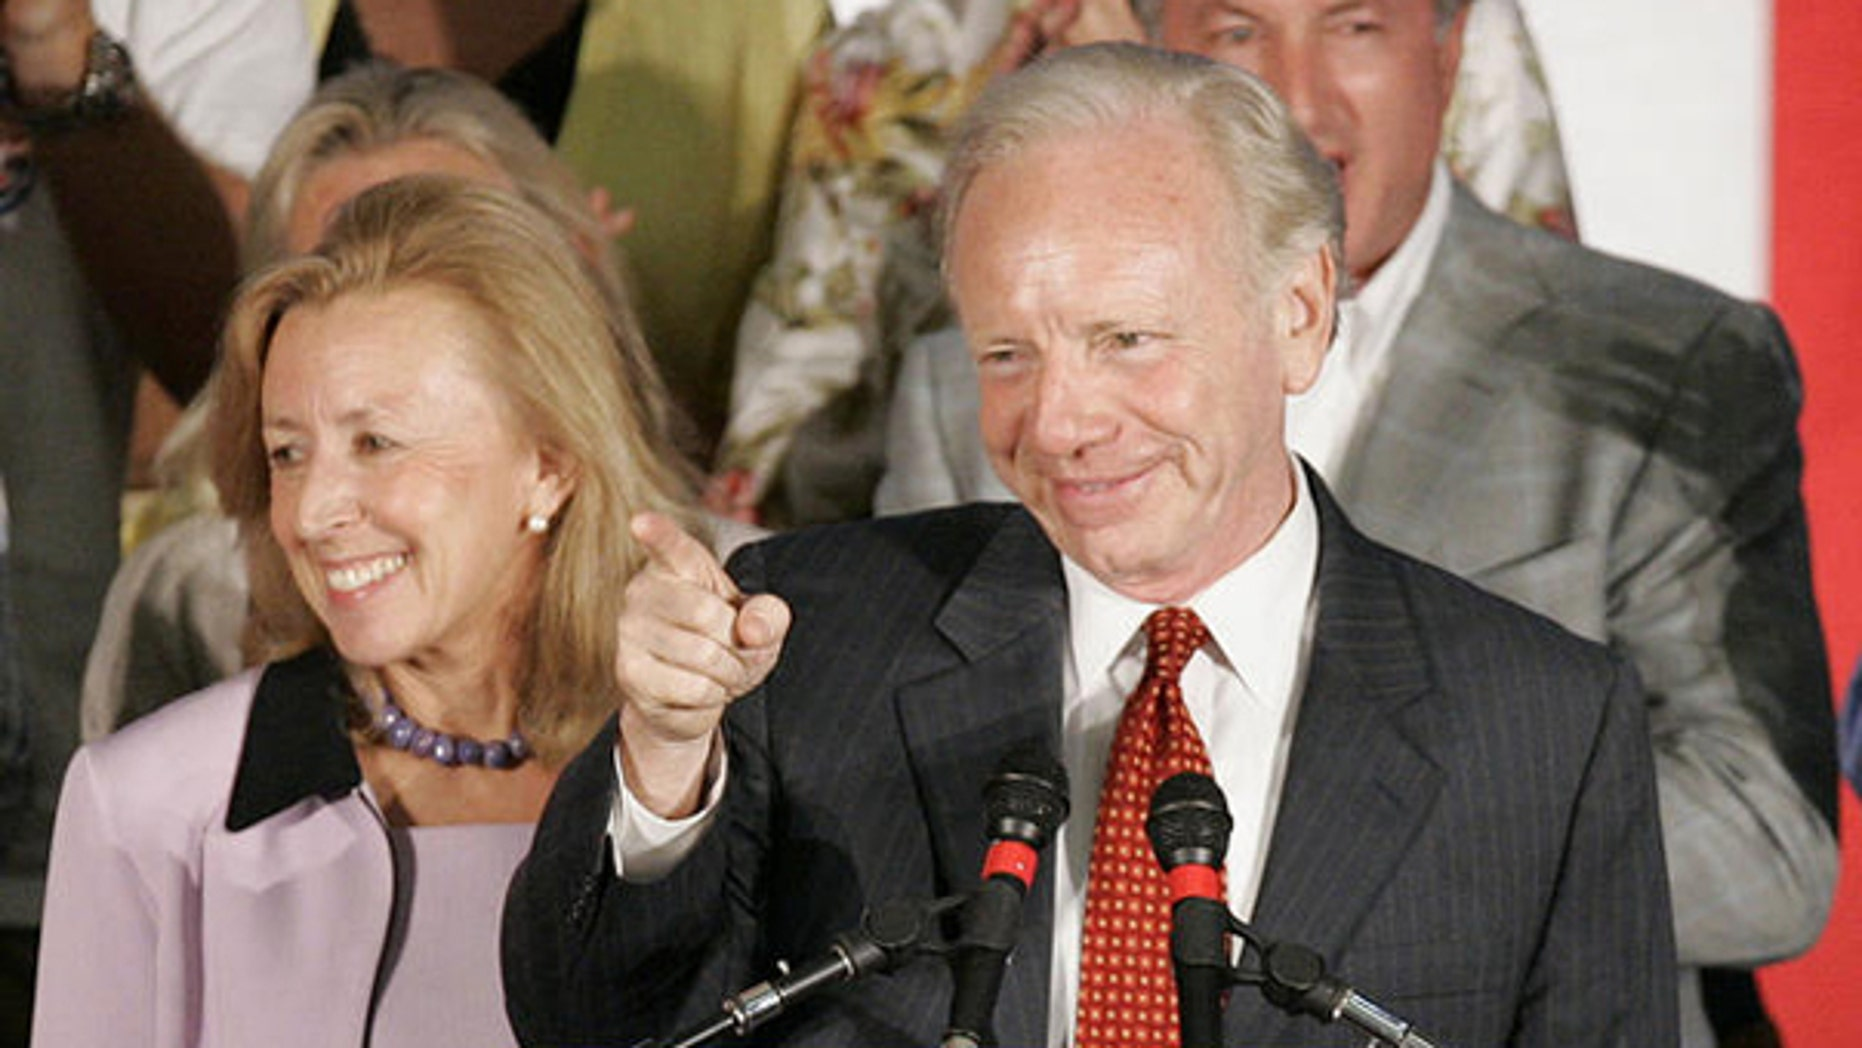 Sen. Joe Lieberman and wife Hadassah are shown here in Hartford, Conn., at a campaign event in August 2006. (AP Photo)